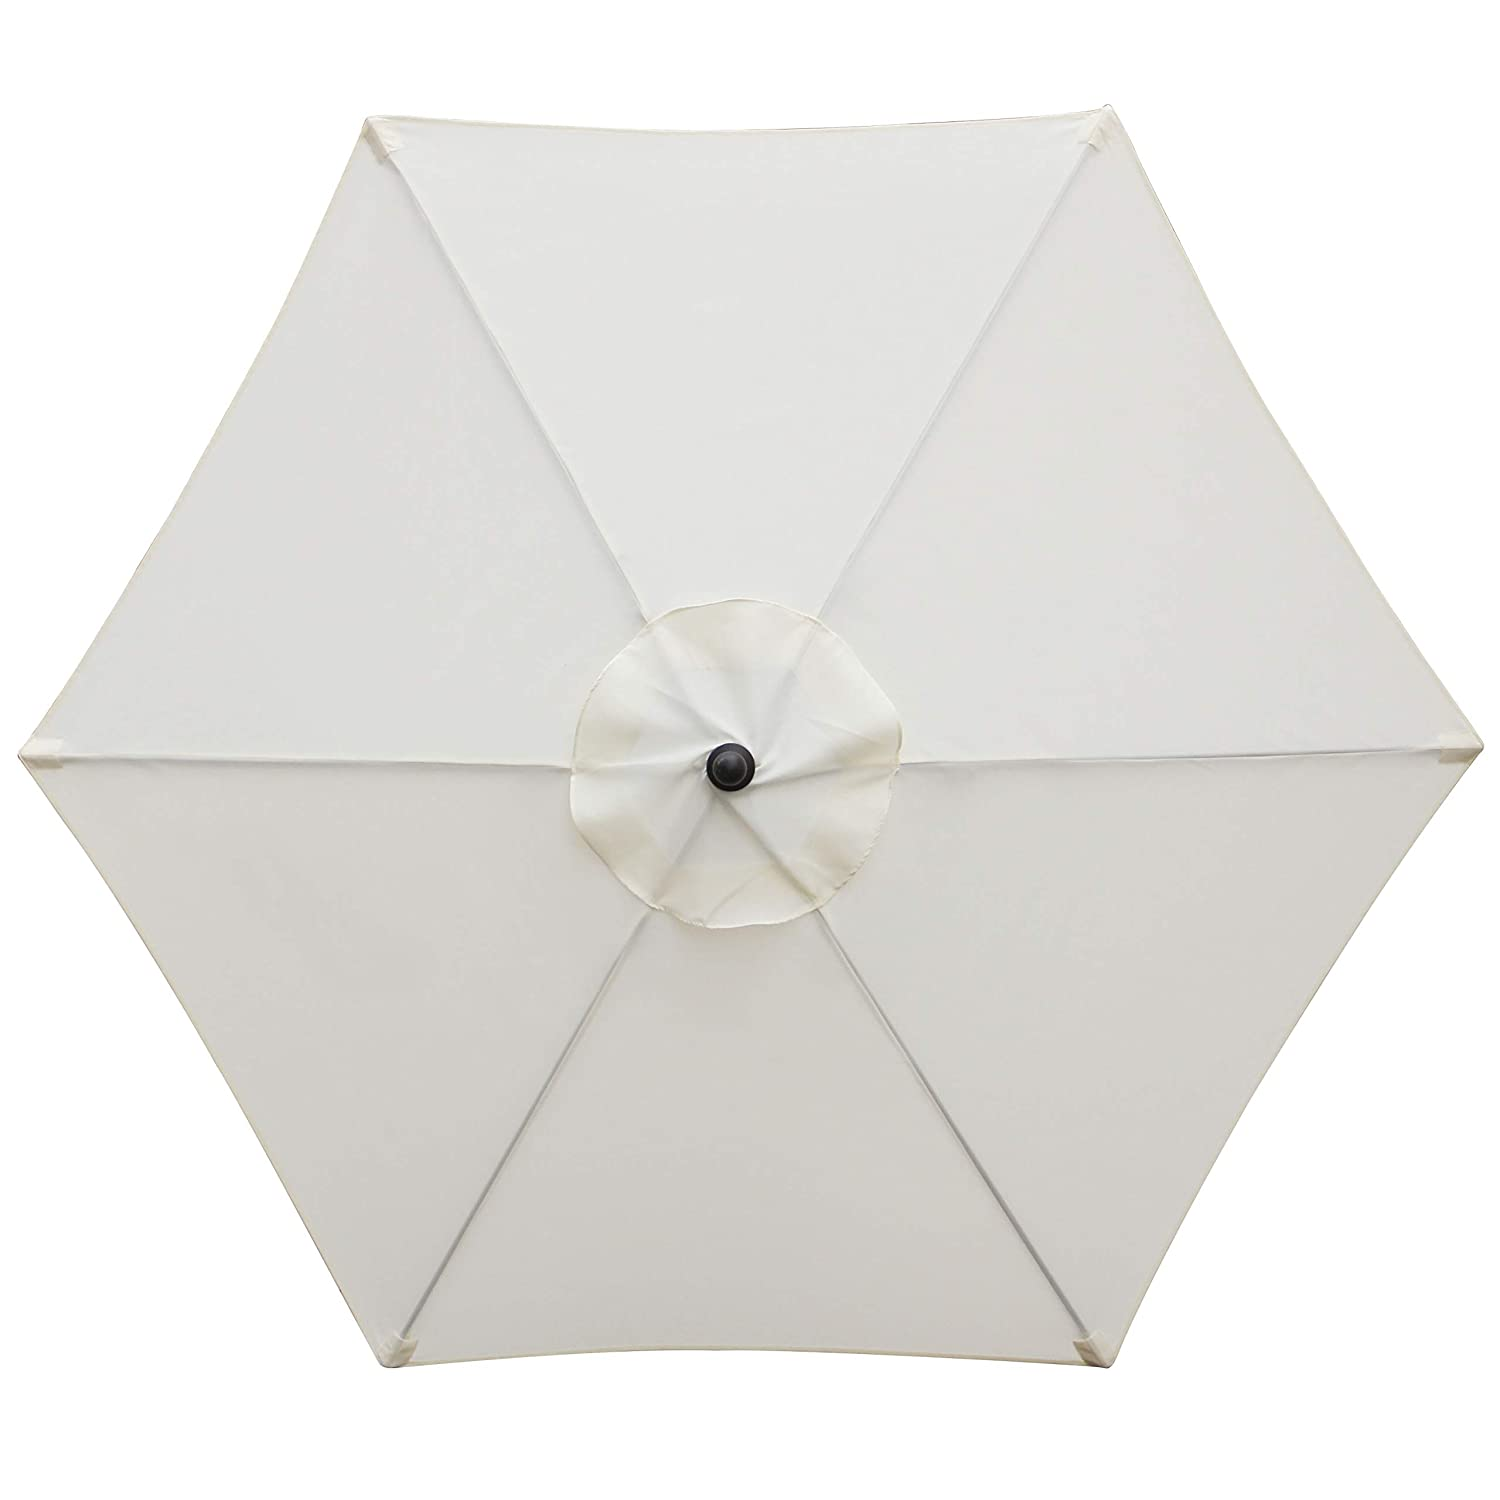 Blissun 7.5 ft Patio Umbrella, Yard Umbrella with Push Button Tilt and Crank Beige